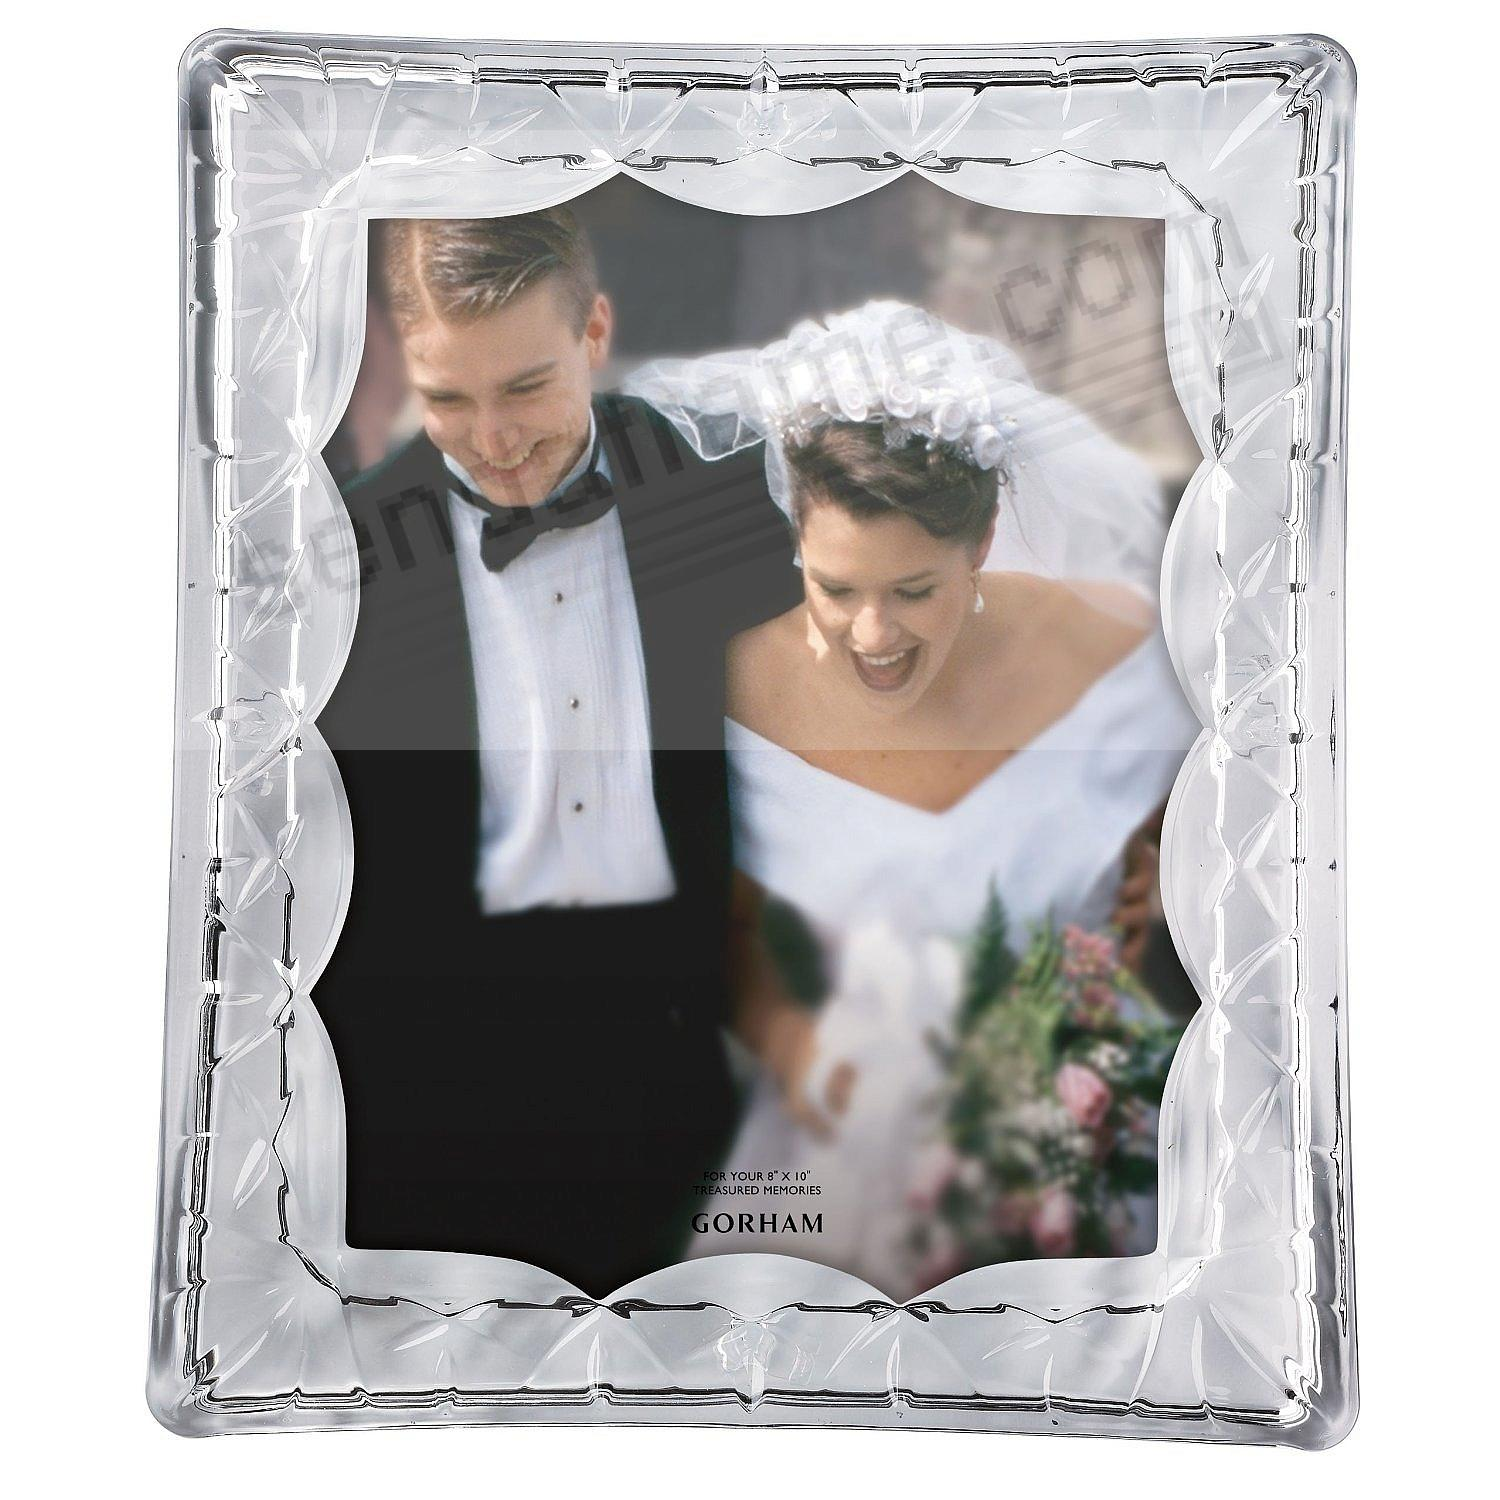 Lady anne european full lead crystal 8x10 frame by gorham lady anne european full lead crystal 8x10 frame by gorham jeuxipadfo Image collections